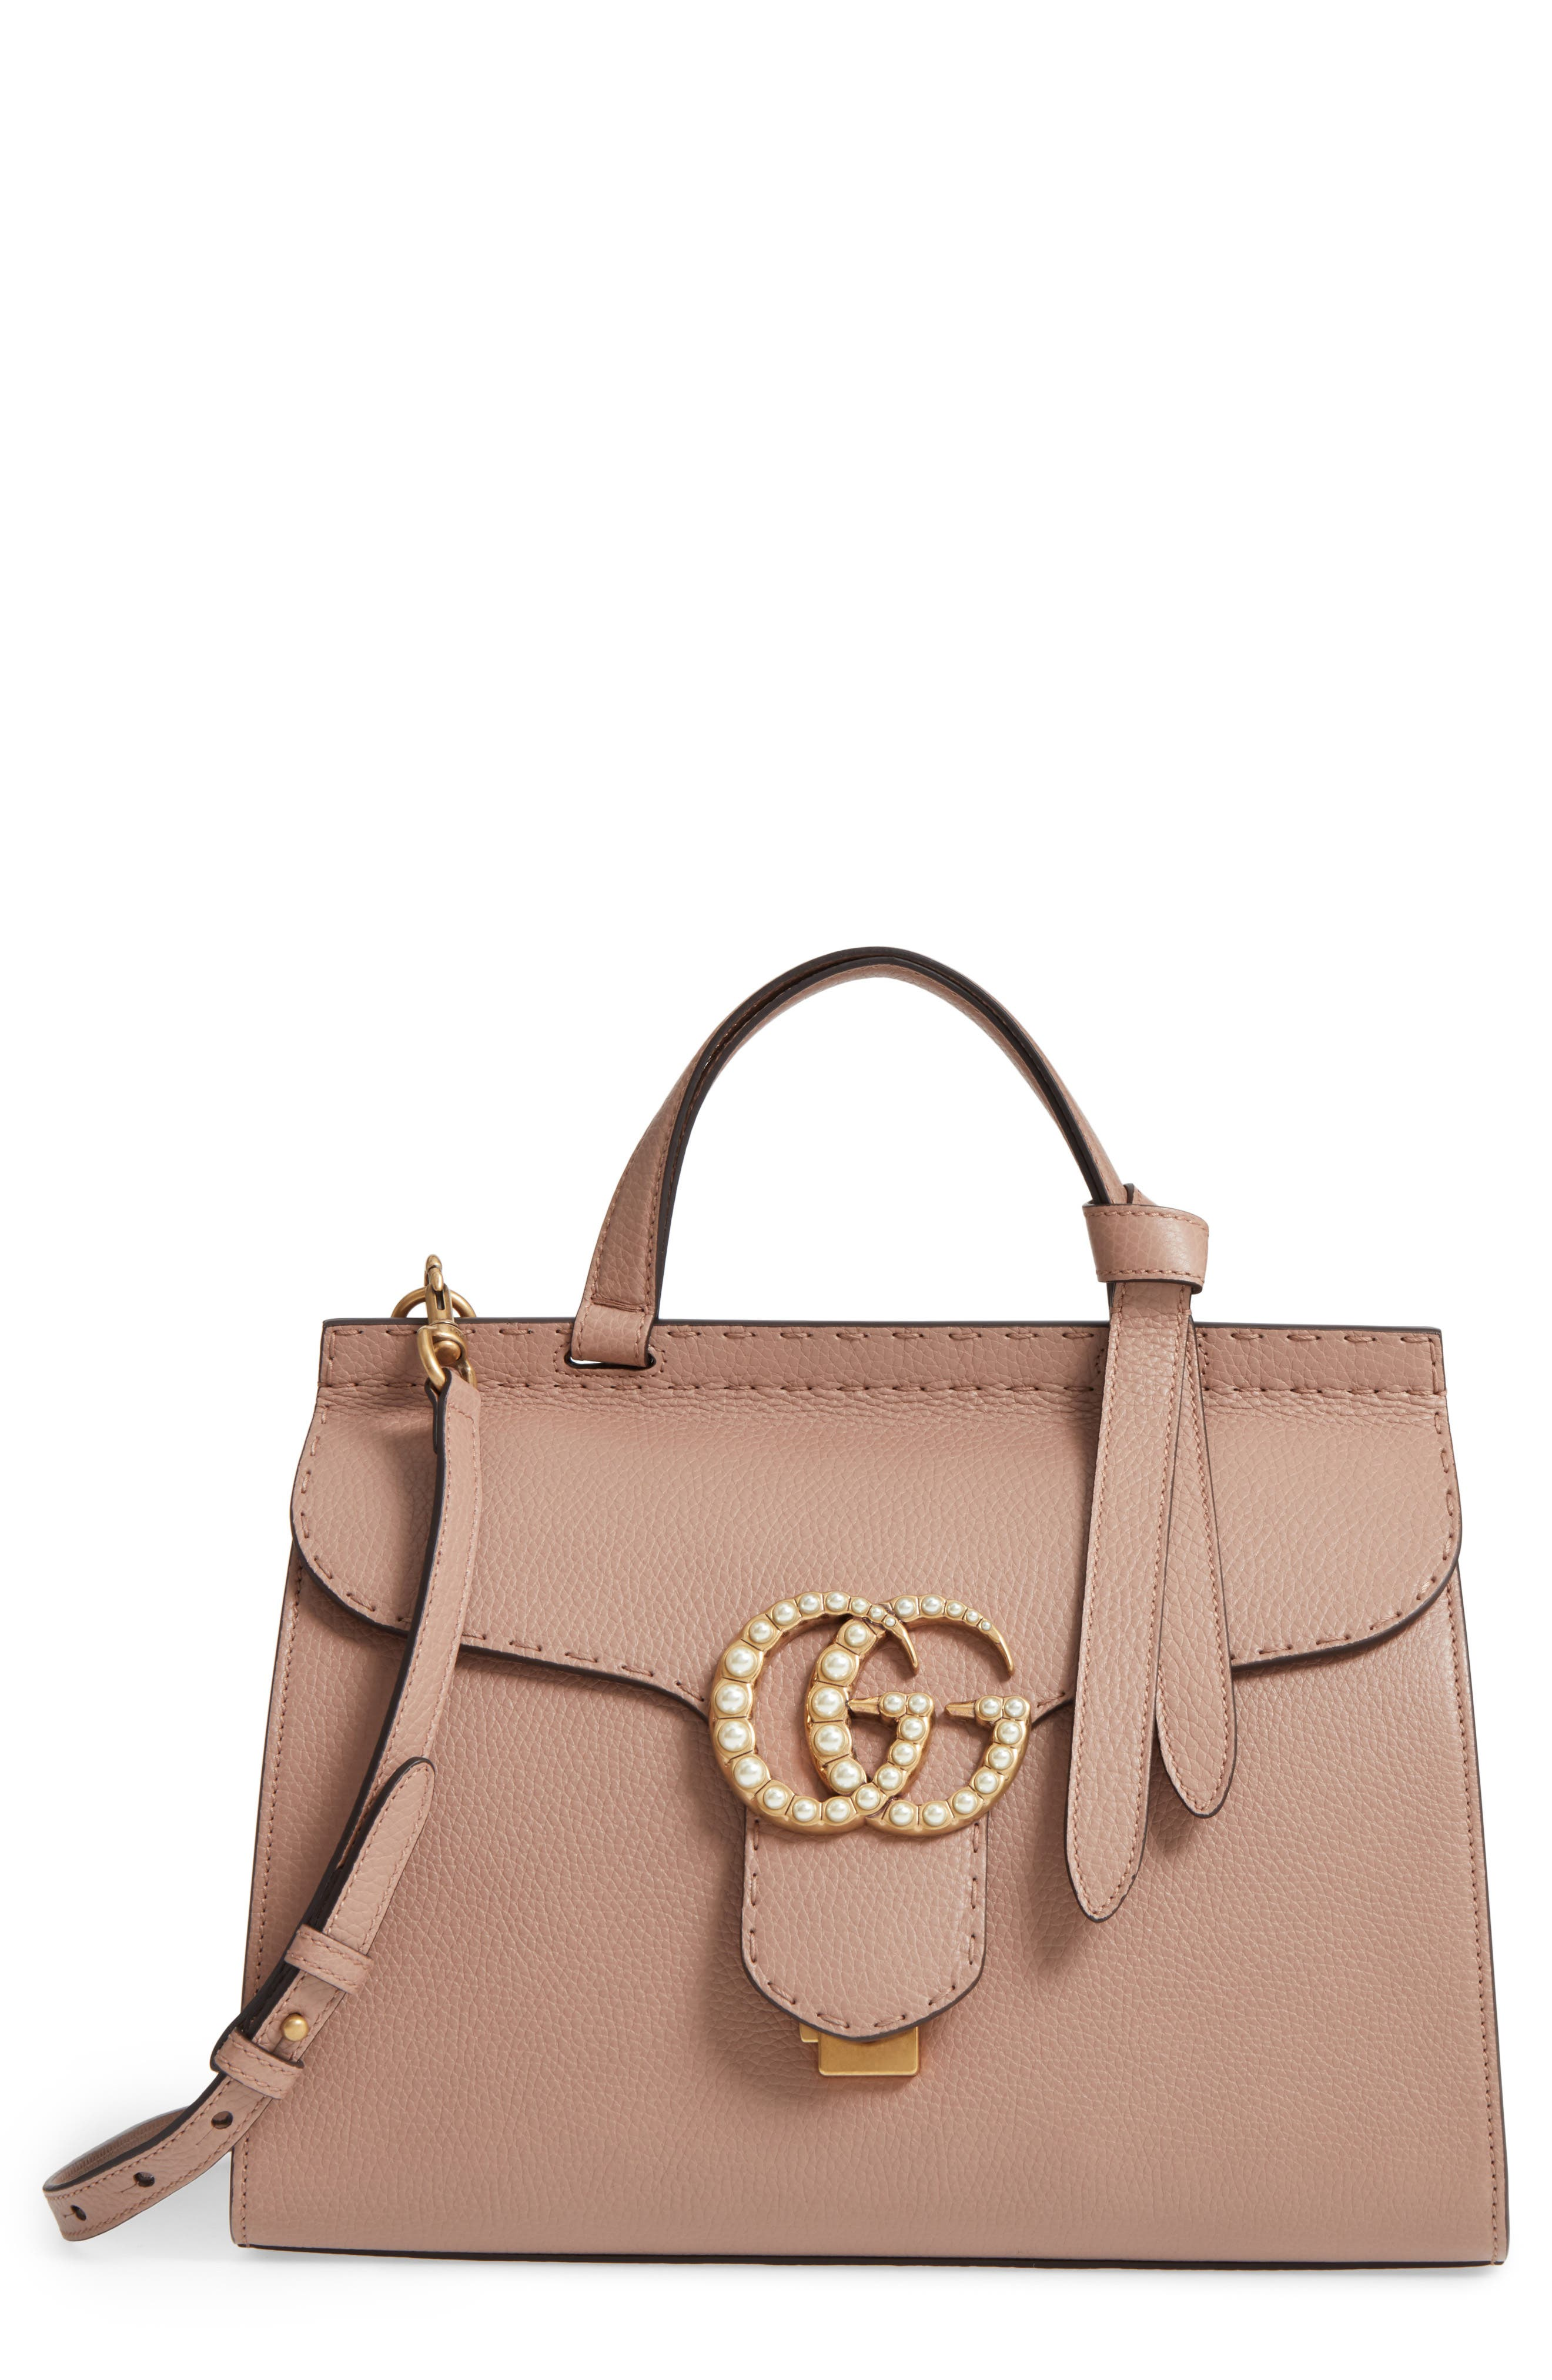 GUCCI GG Marmont Imitation Pearl Logo Top Handle Leather Satchel